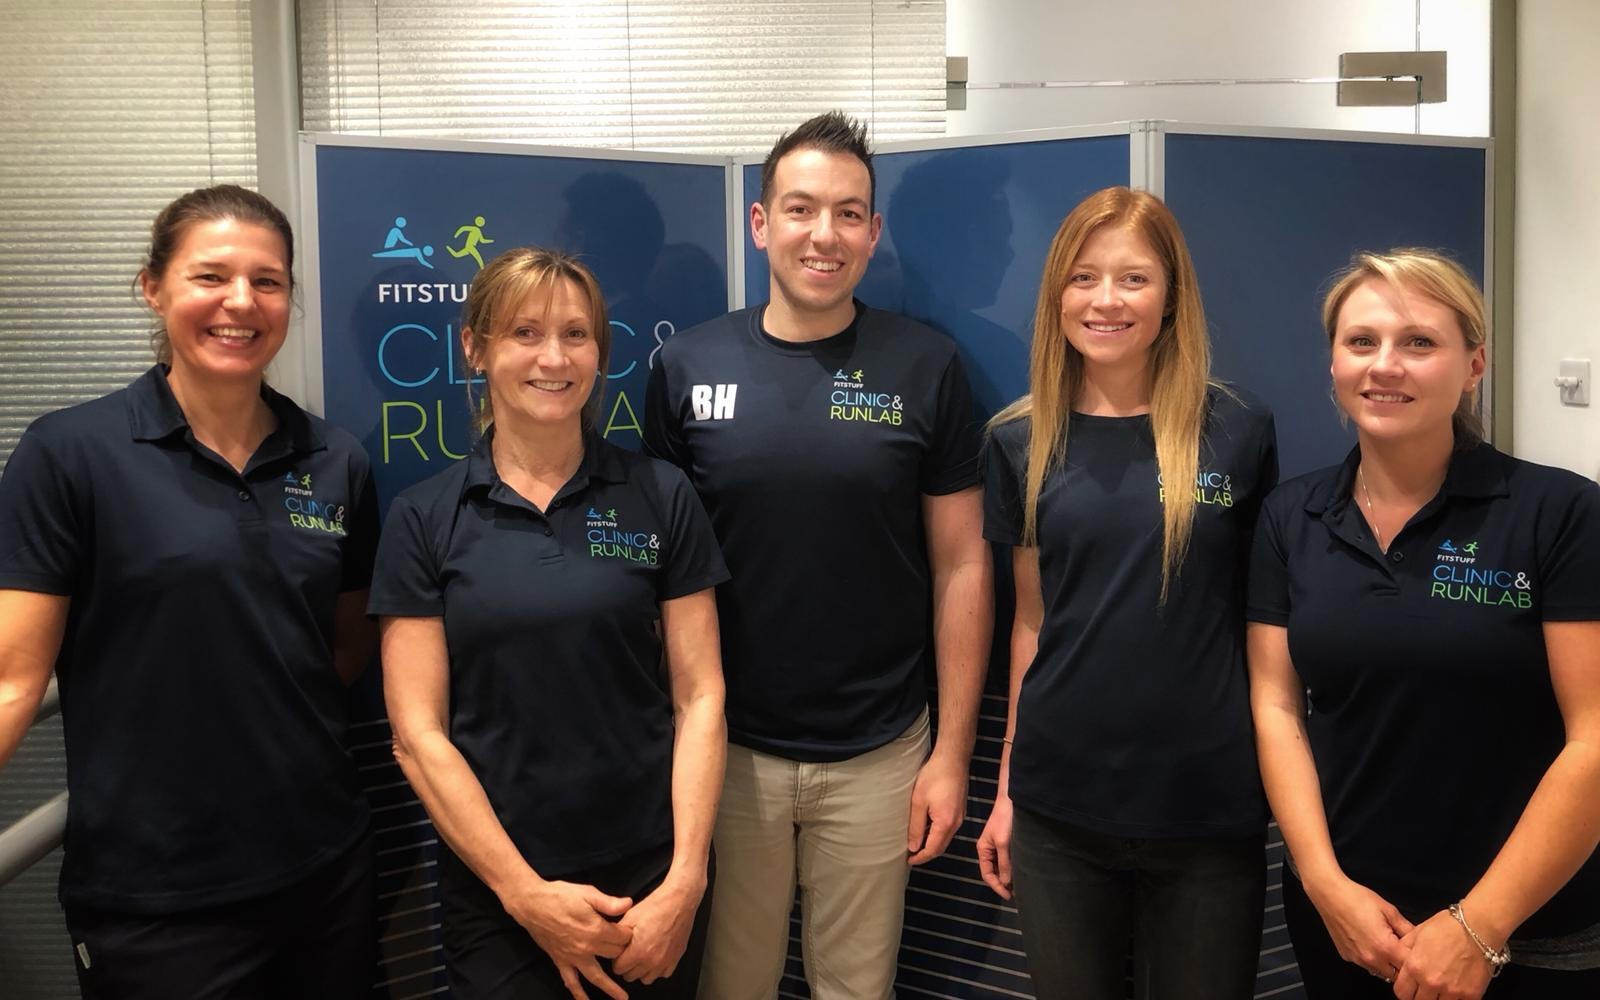 Our Osteopath's work alongside a team of practitioners in nutrition, Pilates and Physiotherapy as well.